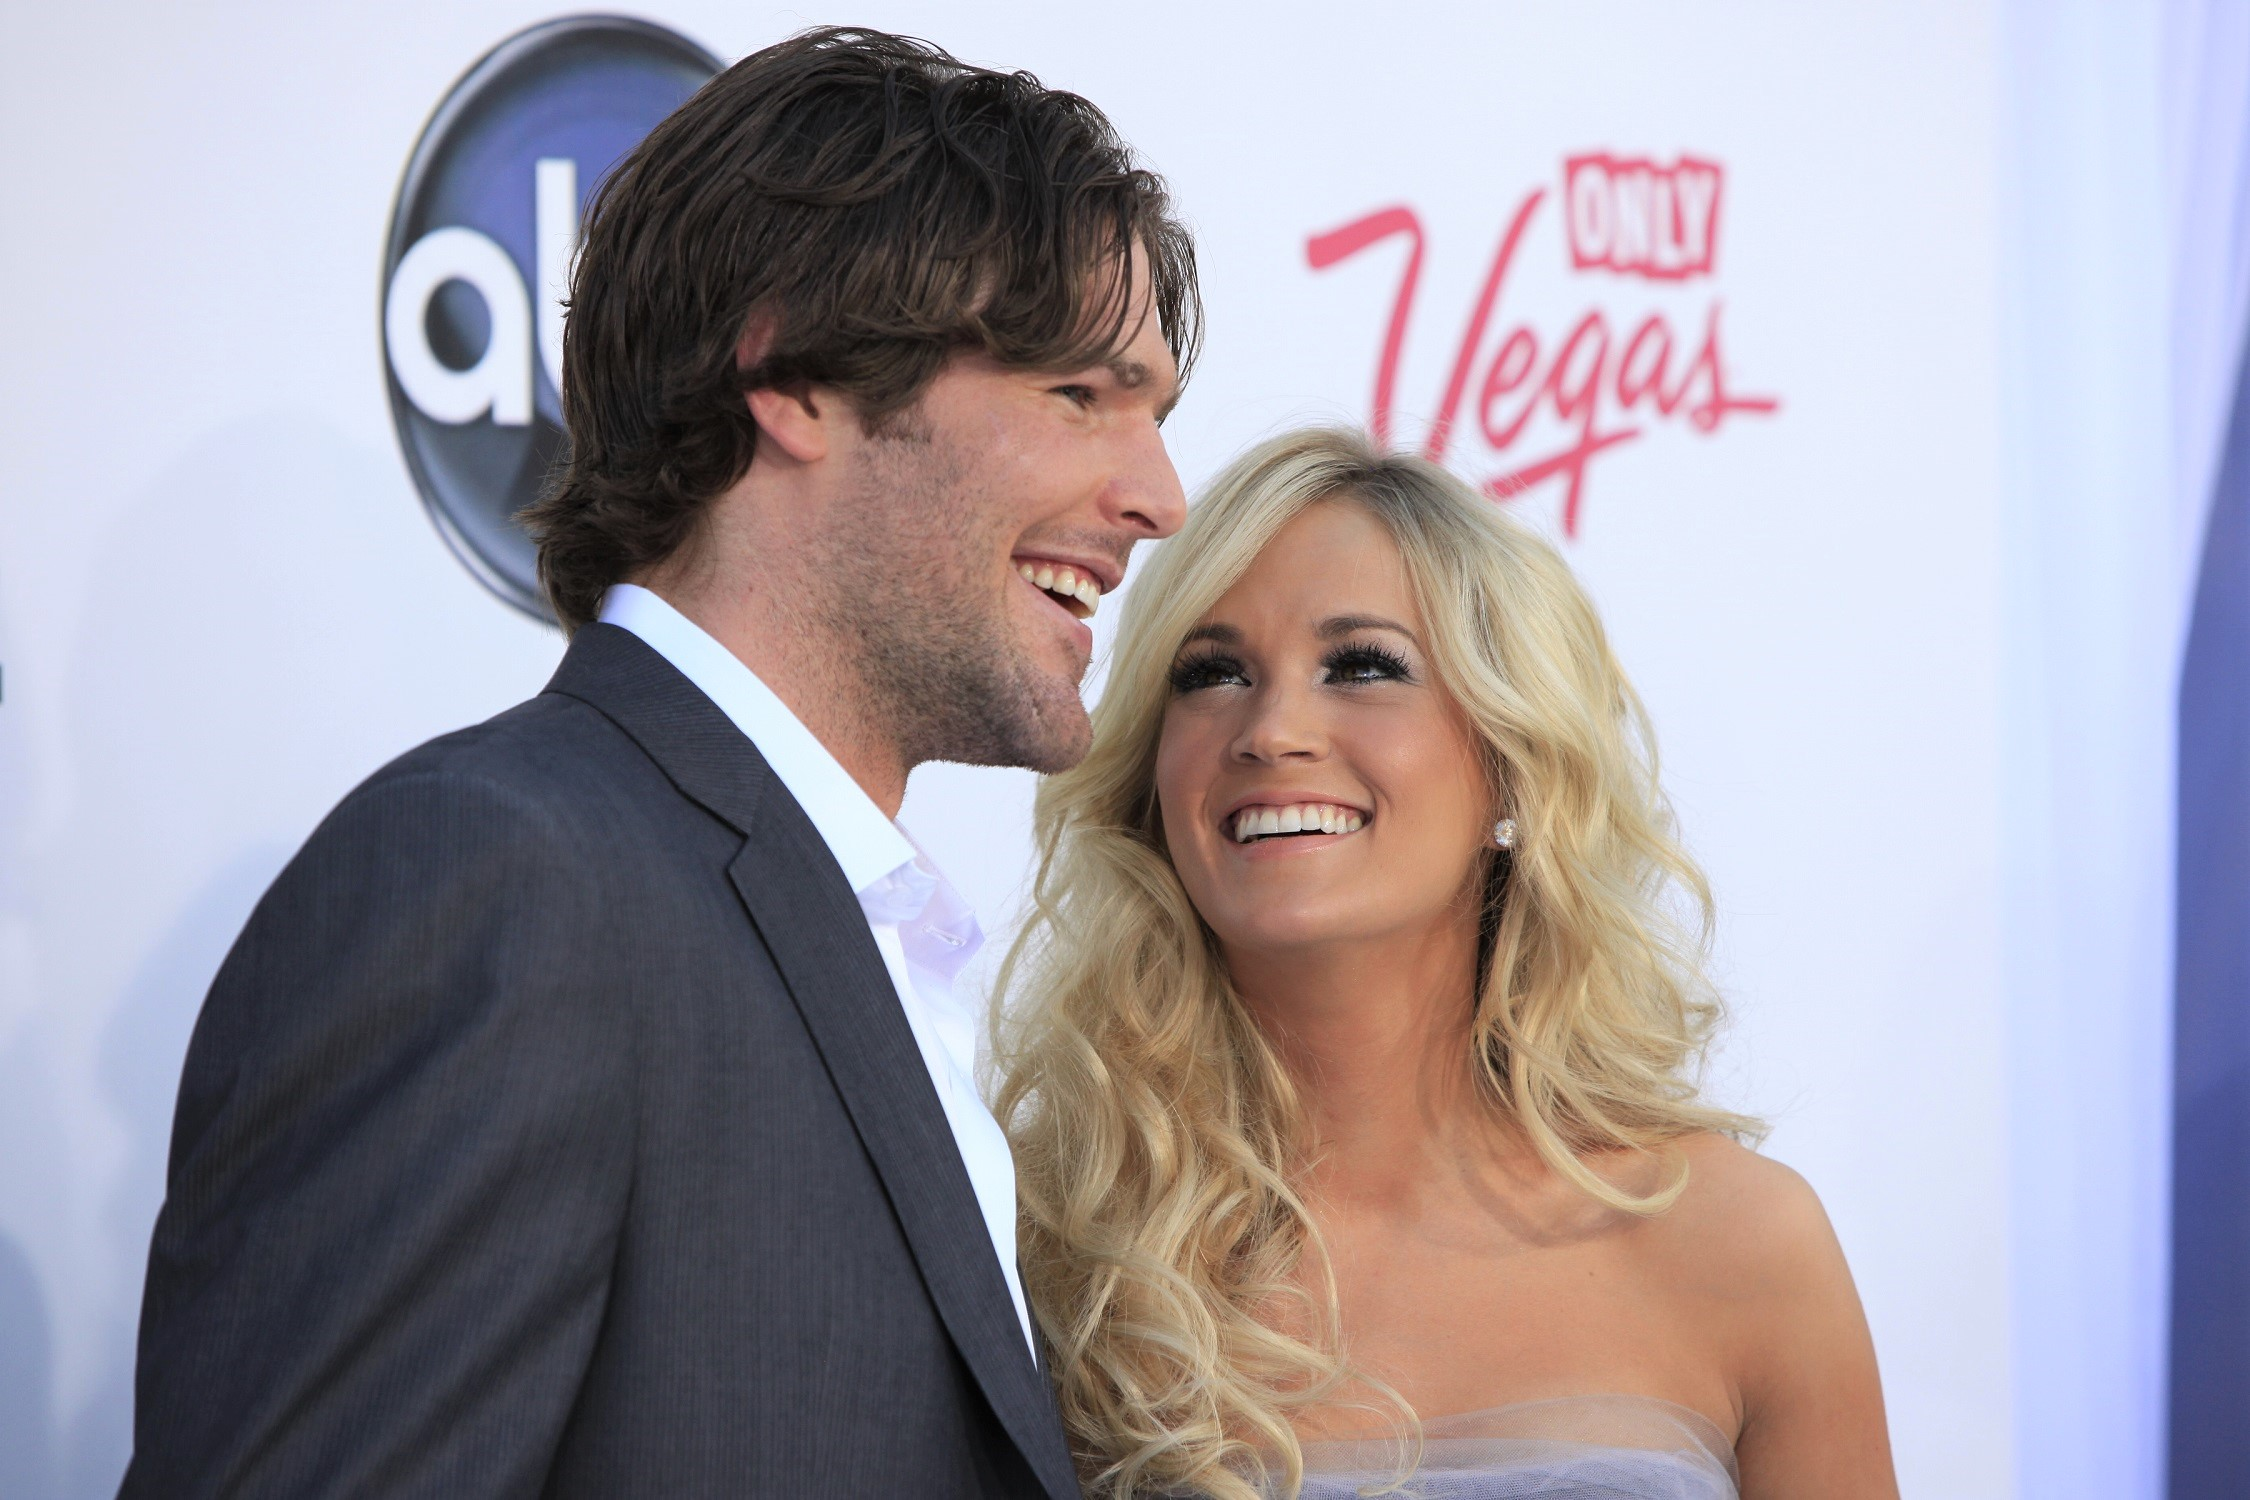 Carrie Underwood Looking Up At Husband Mike Fisher